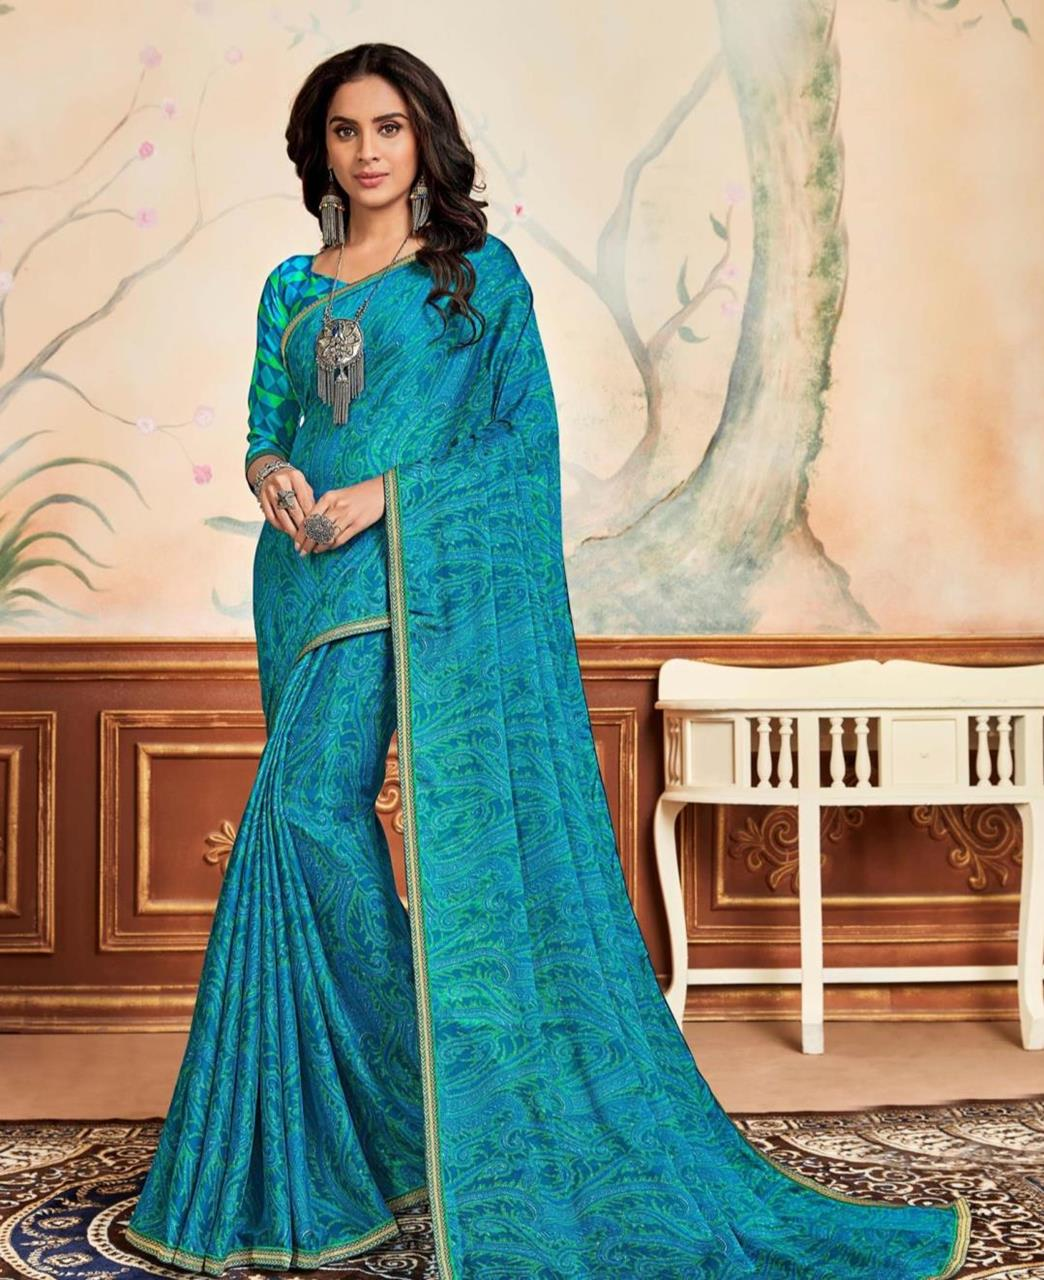 Lace Chiffon Saree in Sky Blue